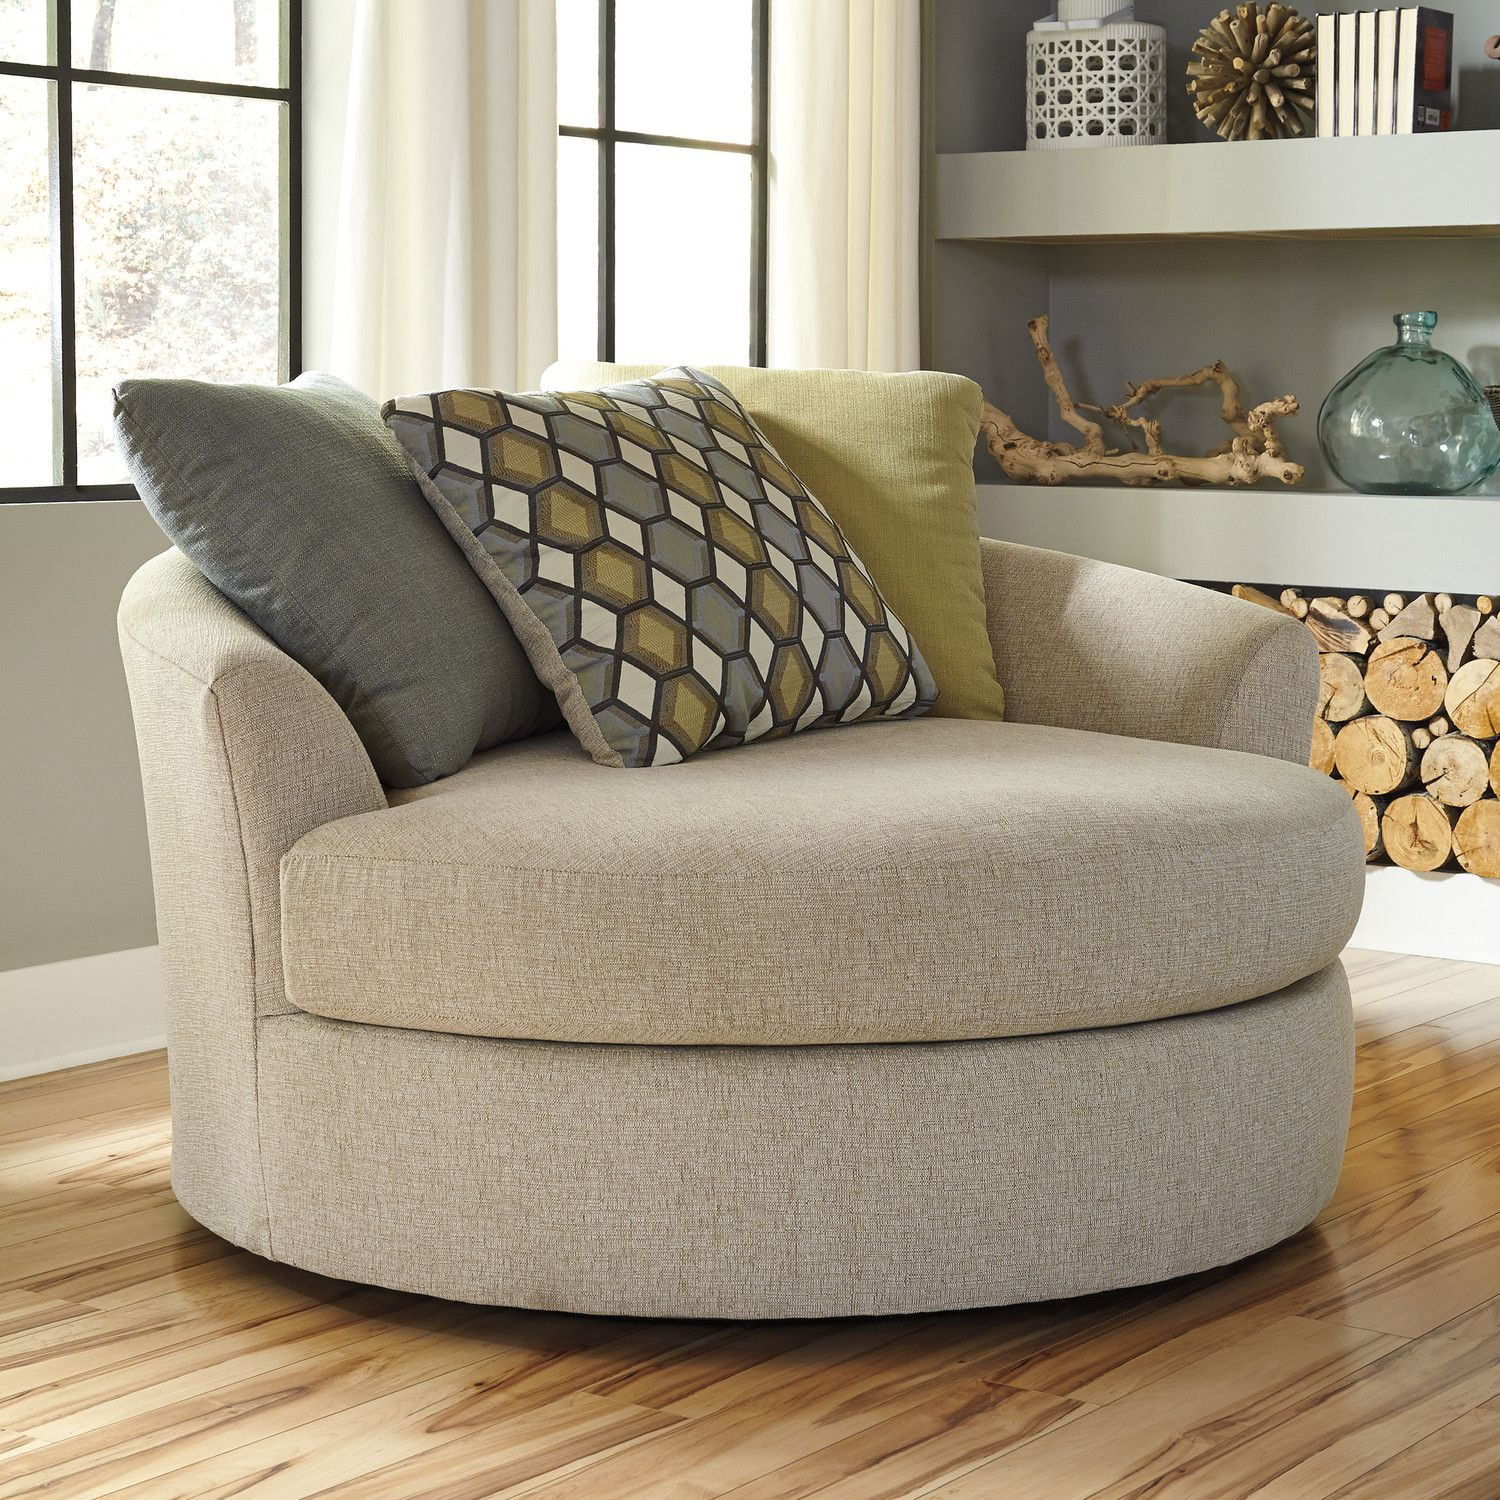 Benchcraft Casheral Oversized Swivel Chair